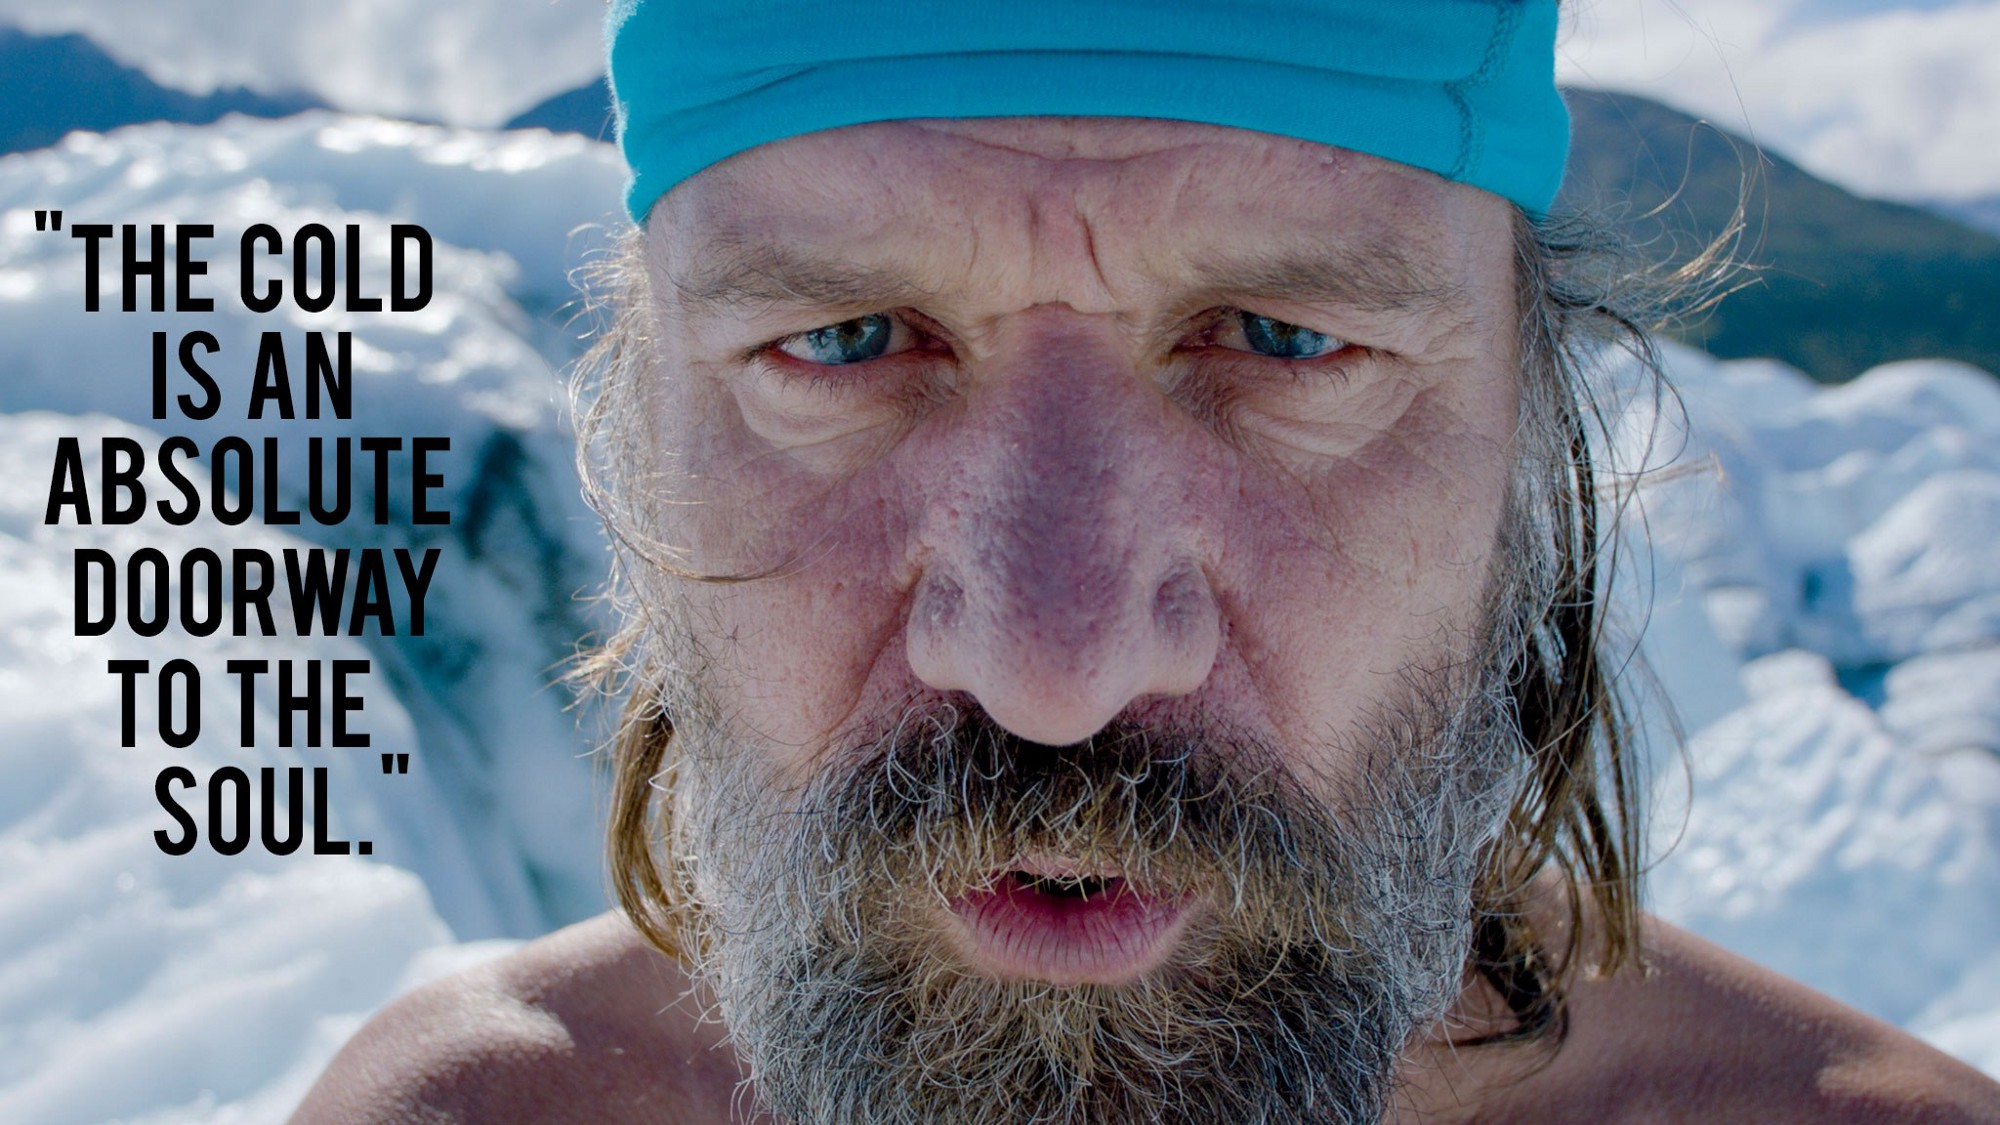 Wim Hof – The Ice Man And His Method